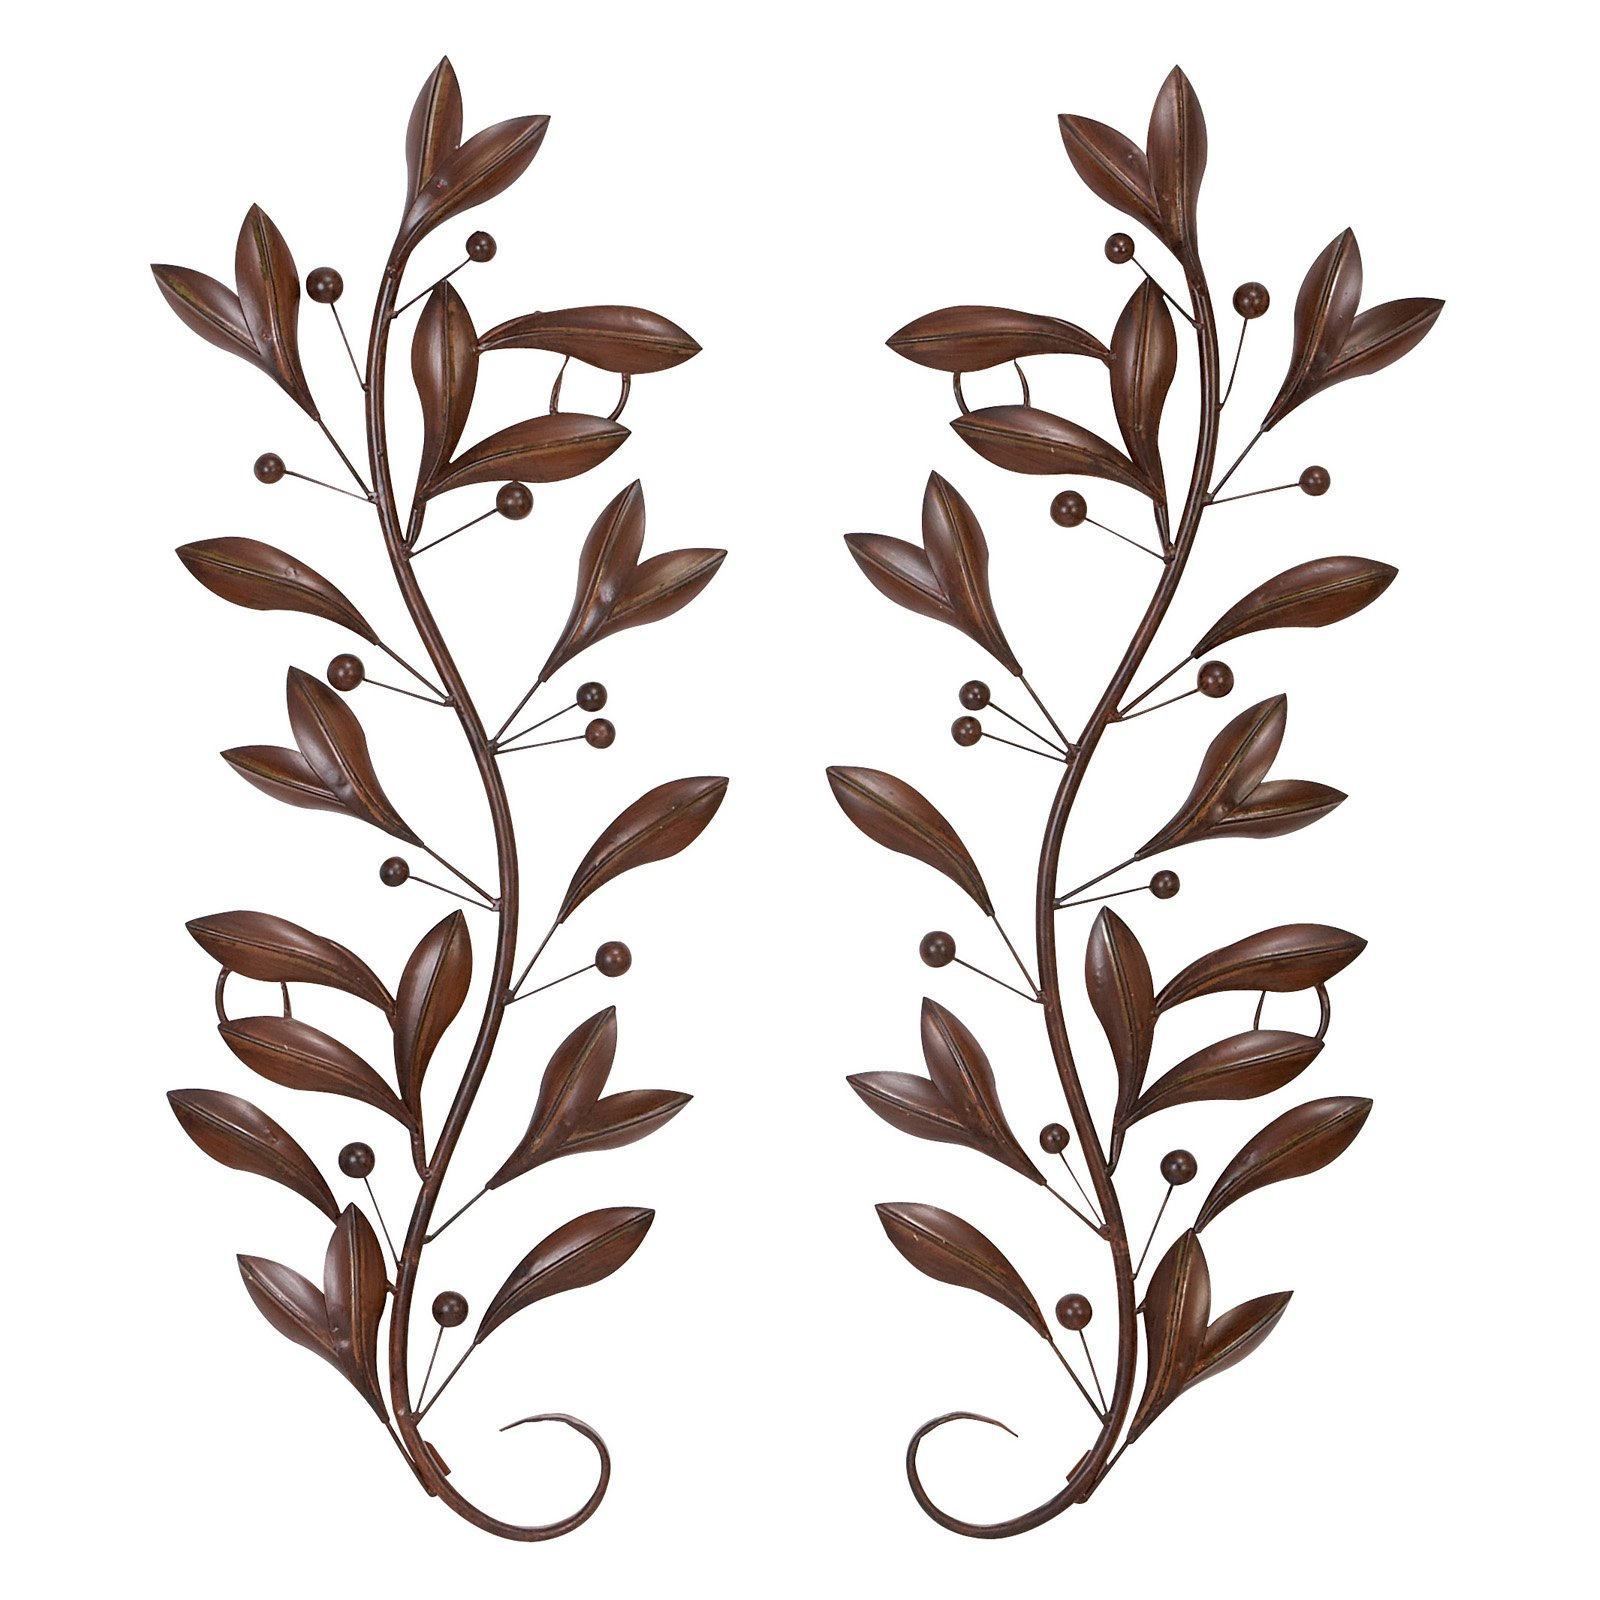 Twig Wall Decor metal wall decor pair for wall decor upgrade option - walmart